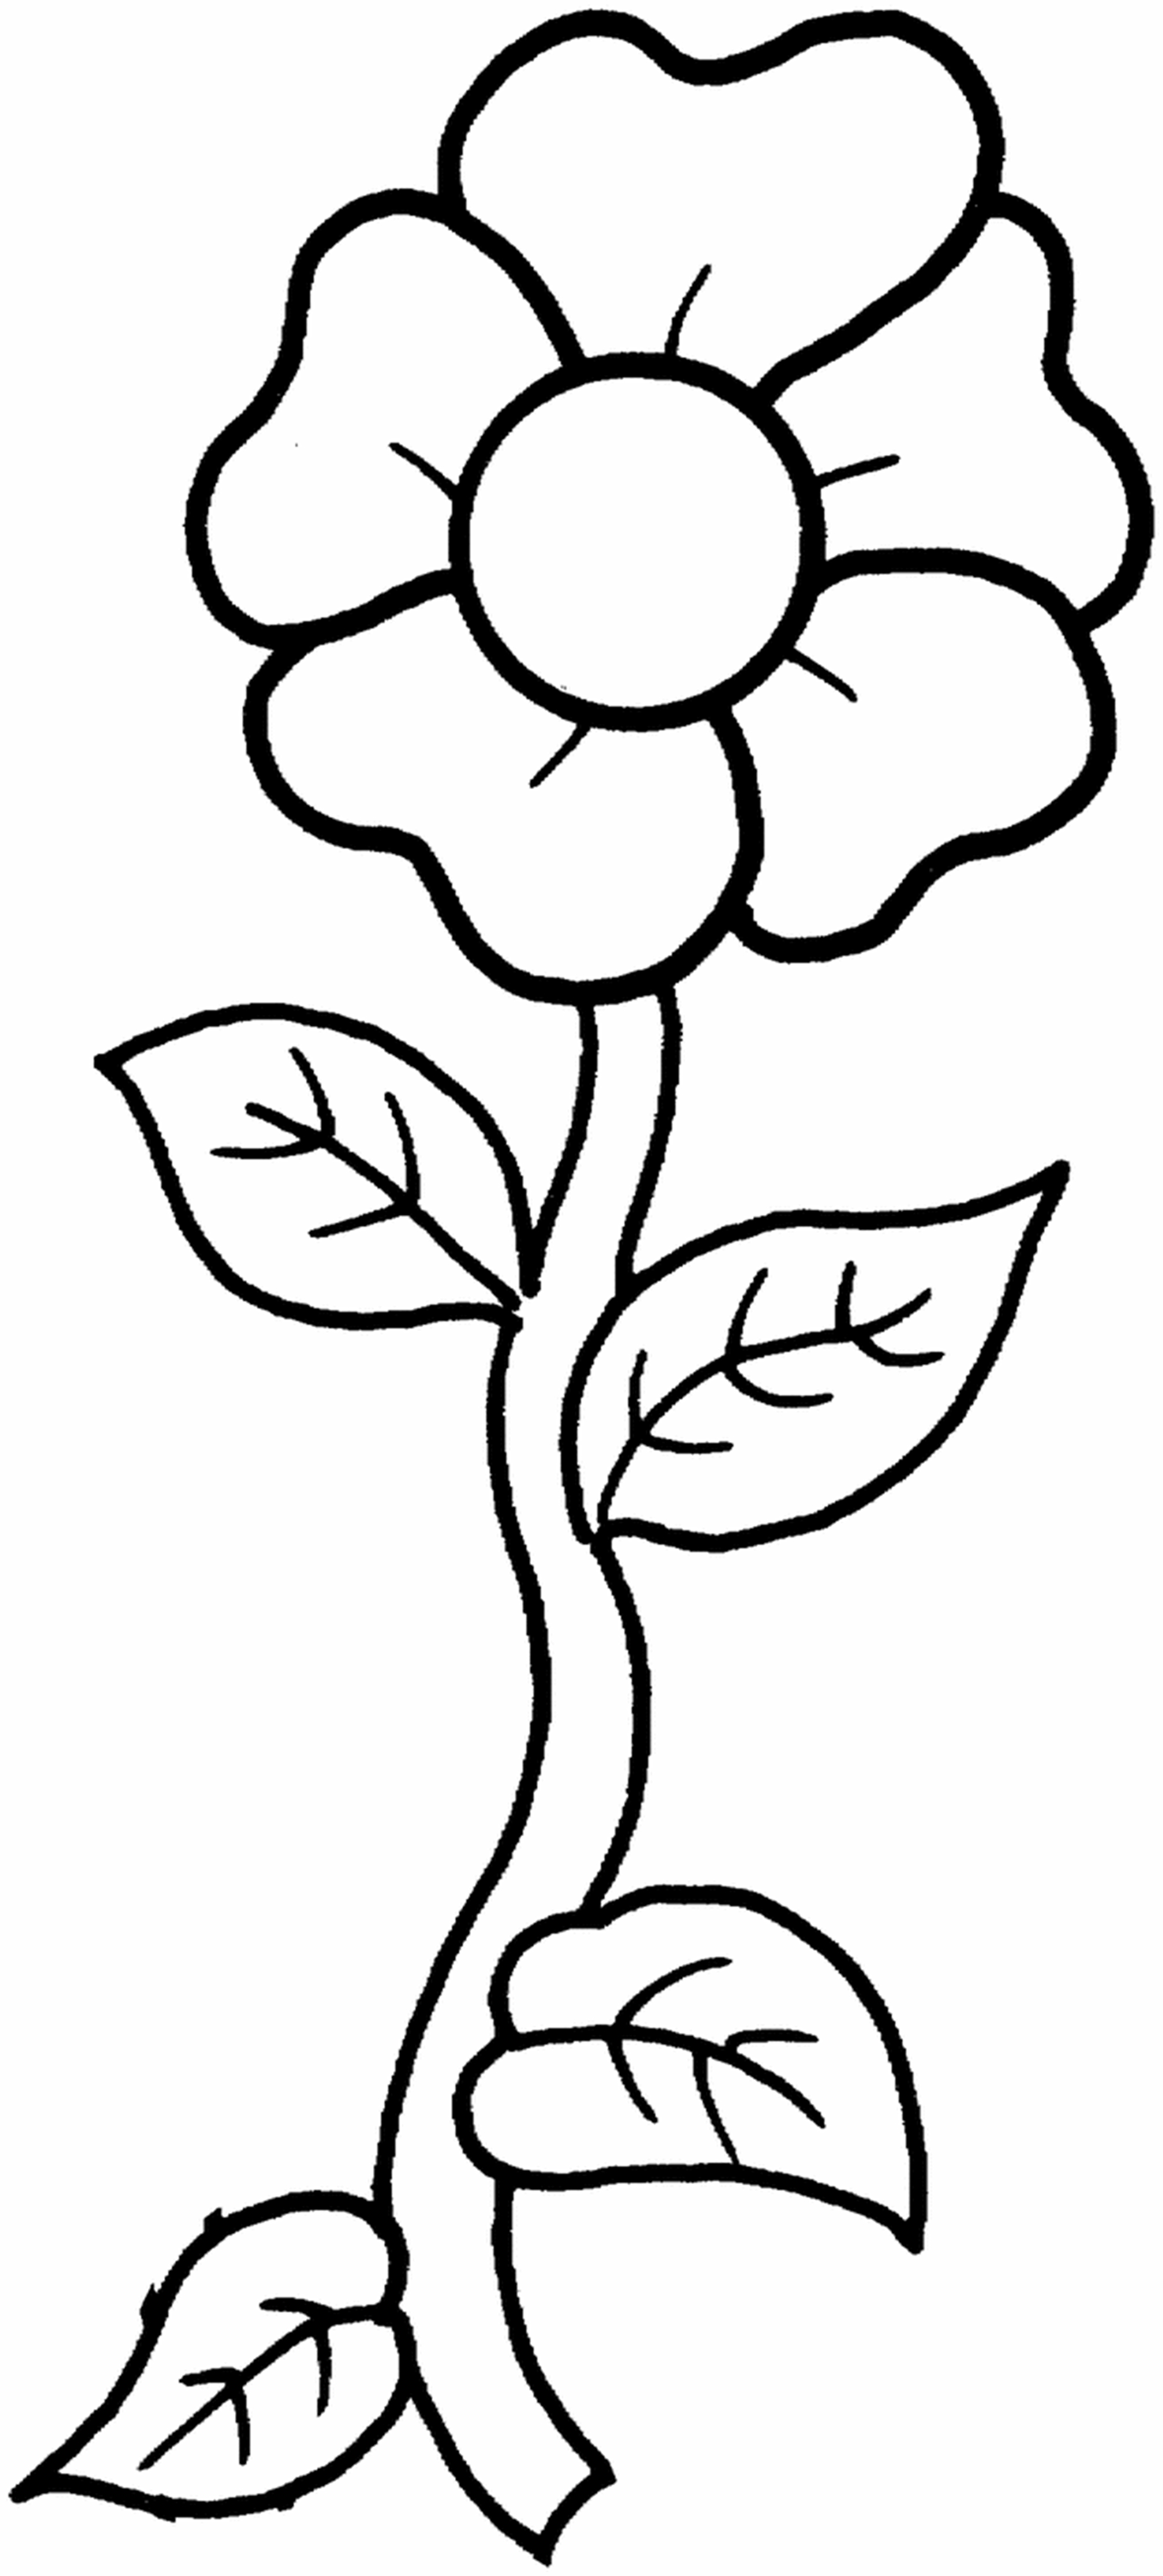 flowers pictures to color free printable flower coloring pages for kids best flowers color to pictures